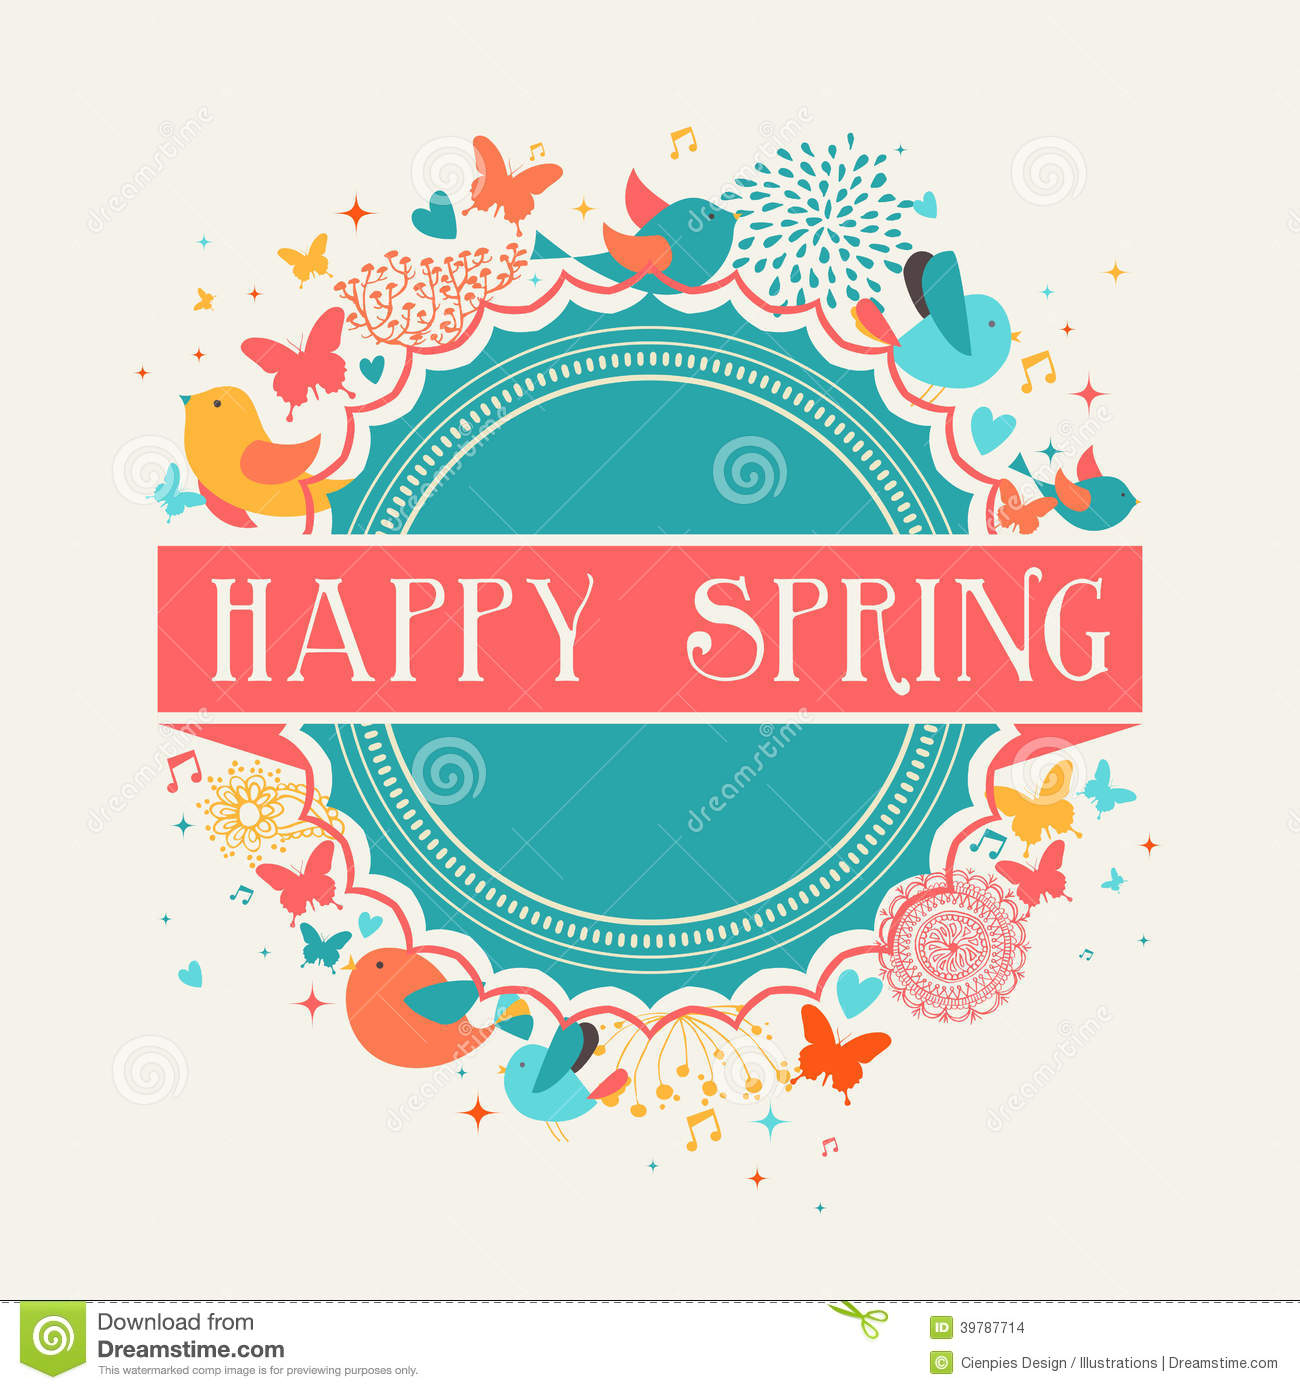 Happy Spring Flower Composition Cartoon Vector